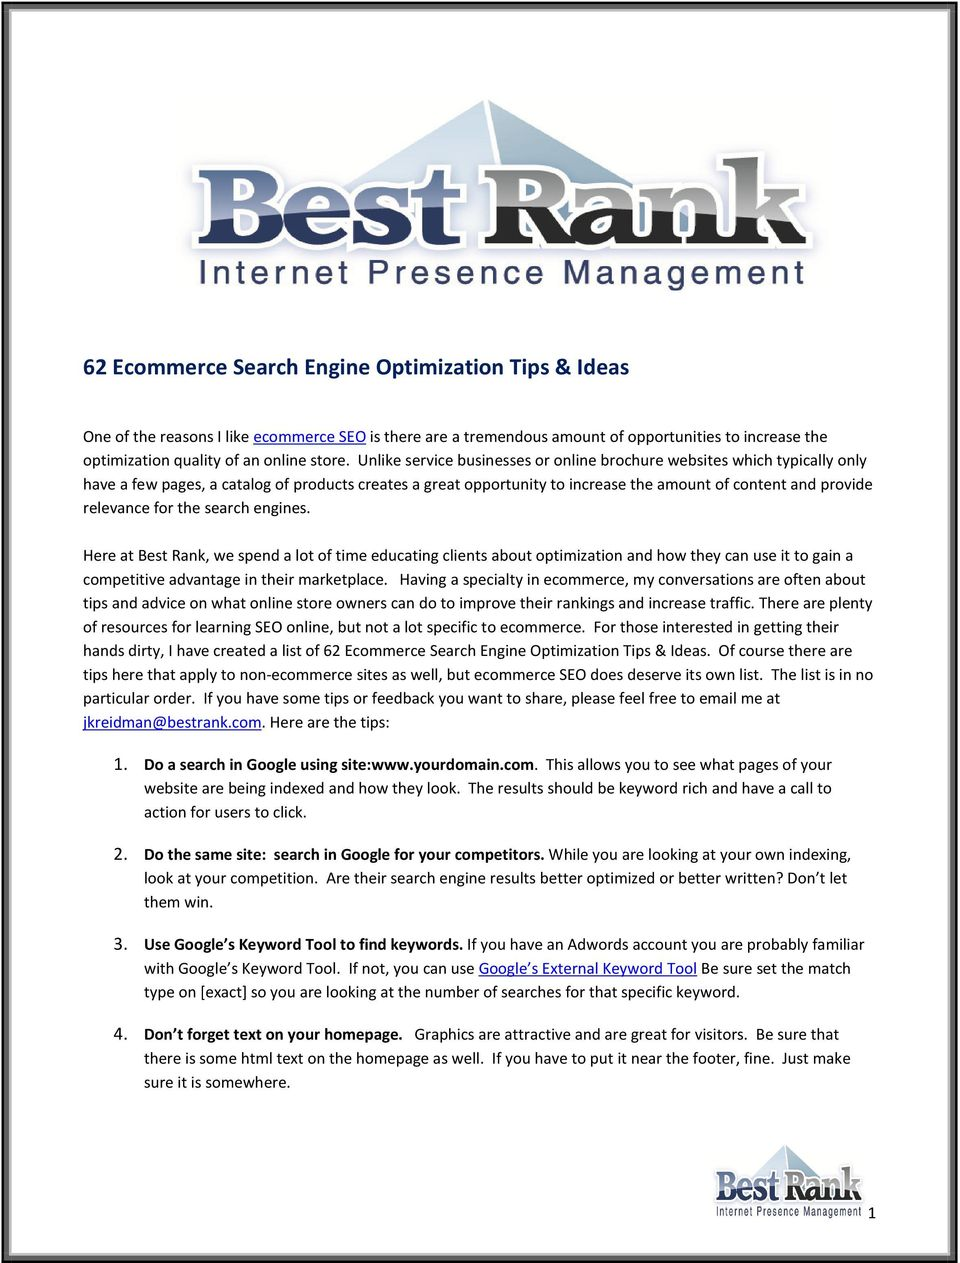 for the search engines. Here at Best Rank, we spend a lot of time educating clients about optimization and how they can use it to gain a competitive advantage in their marketplace.